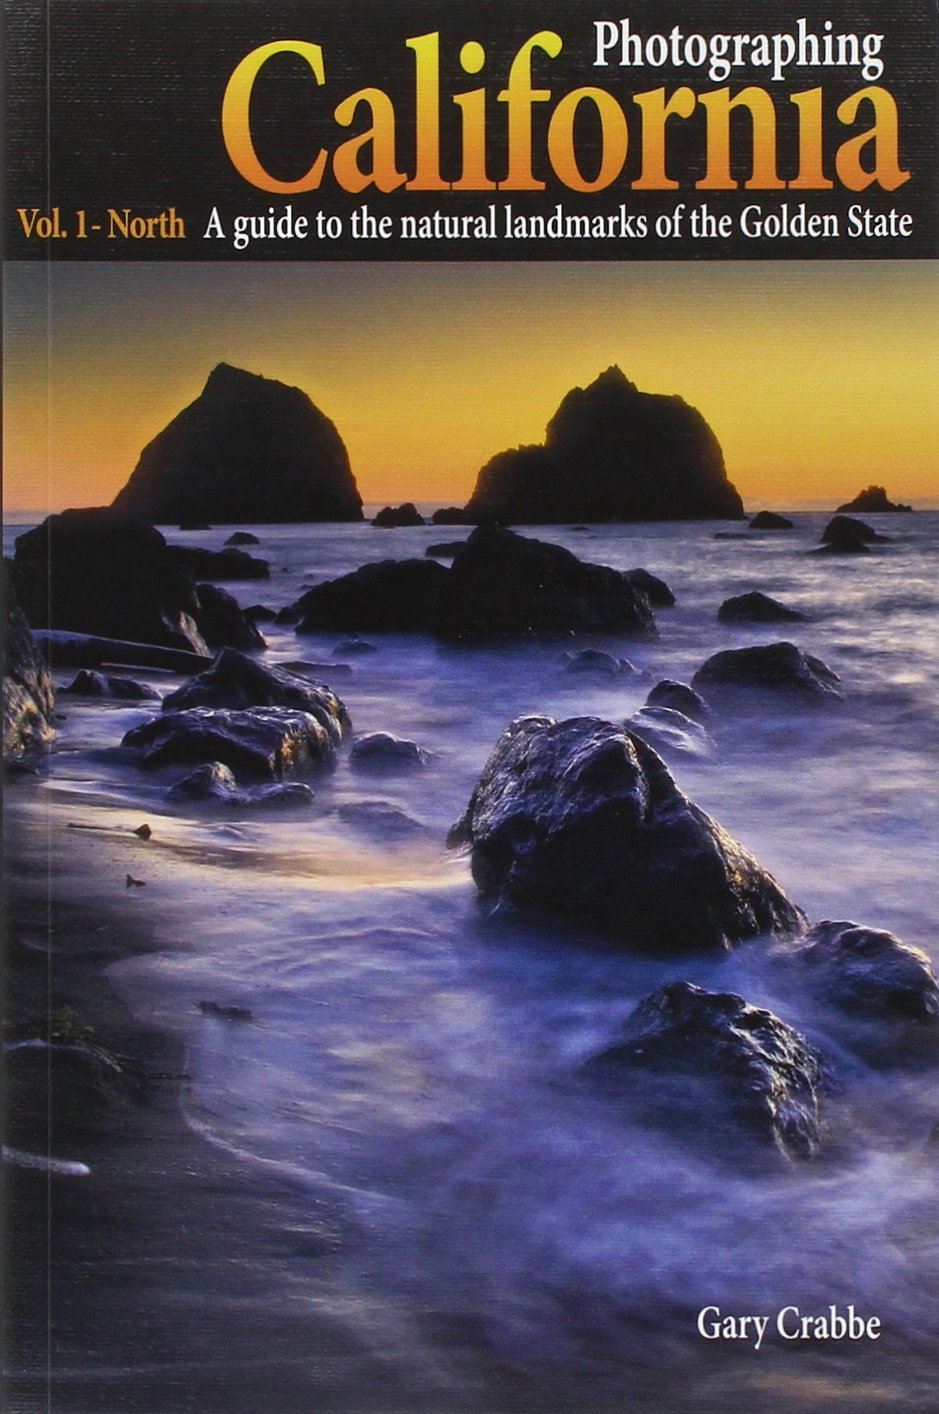 Photographing california vol 1 north a guide to the natural photographing california vol 1 north a guide to the natural landmarks of the golden state gary crabbe laurent martres 9780916189204 amazon fandeluxe Image collections